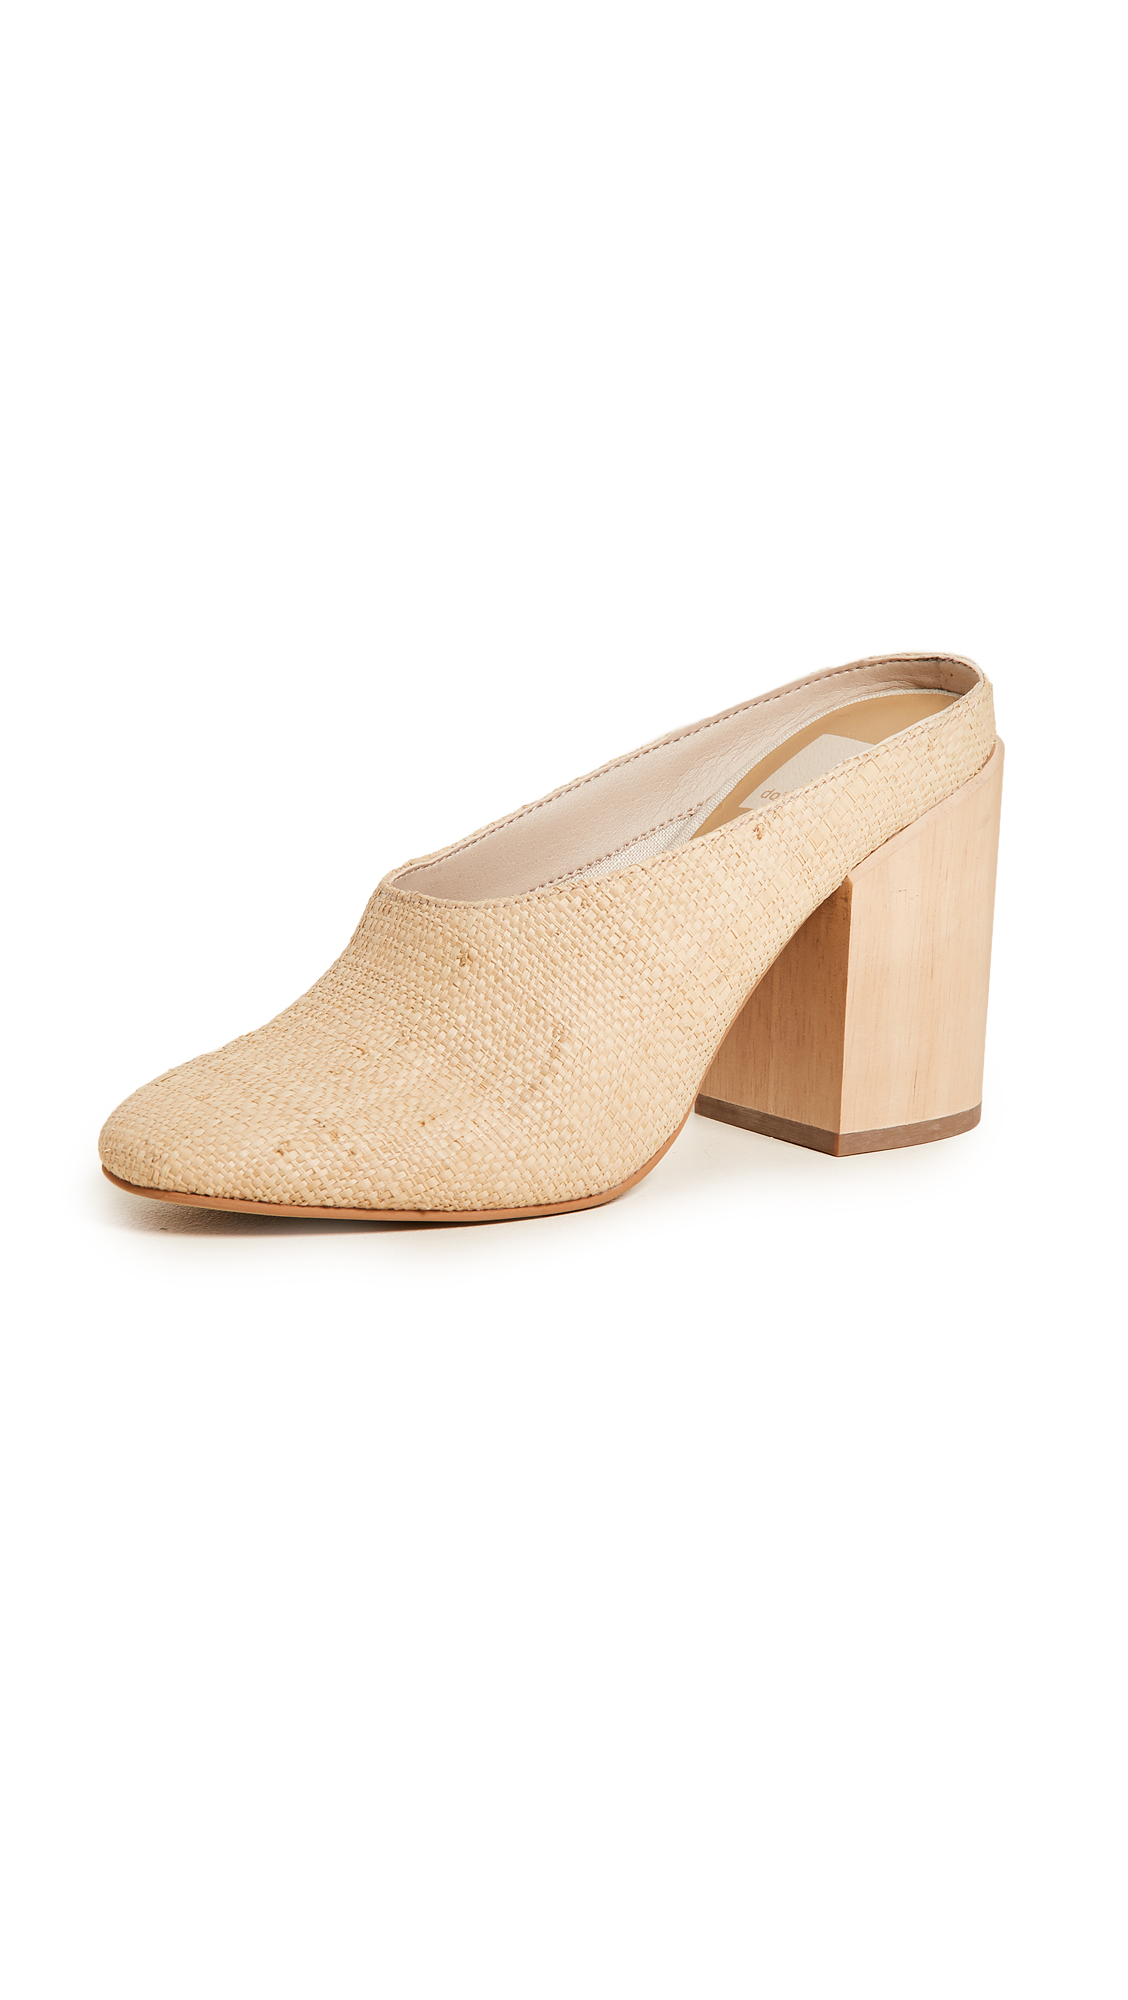 Dolce Vita Caley Block Heel Mules In Natural